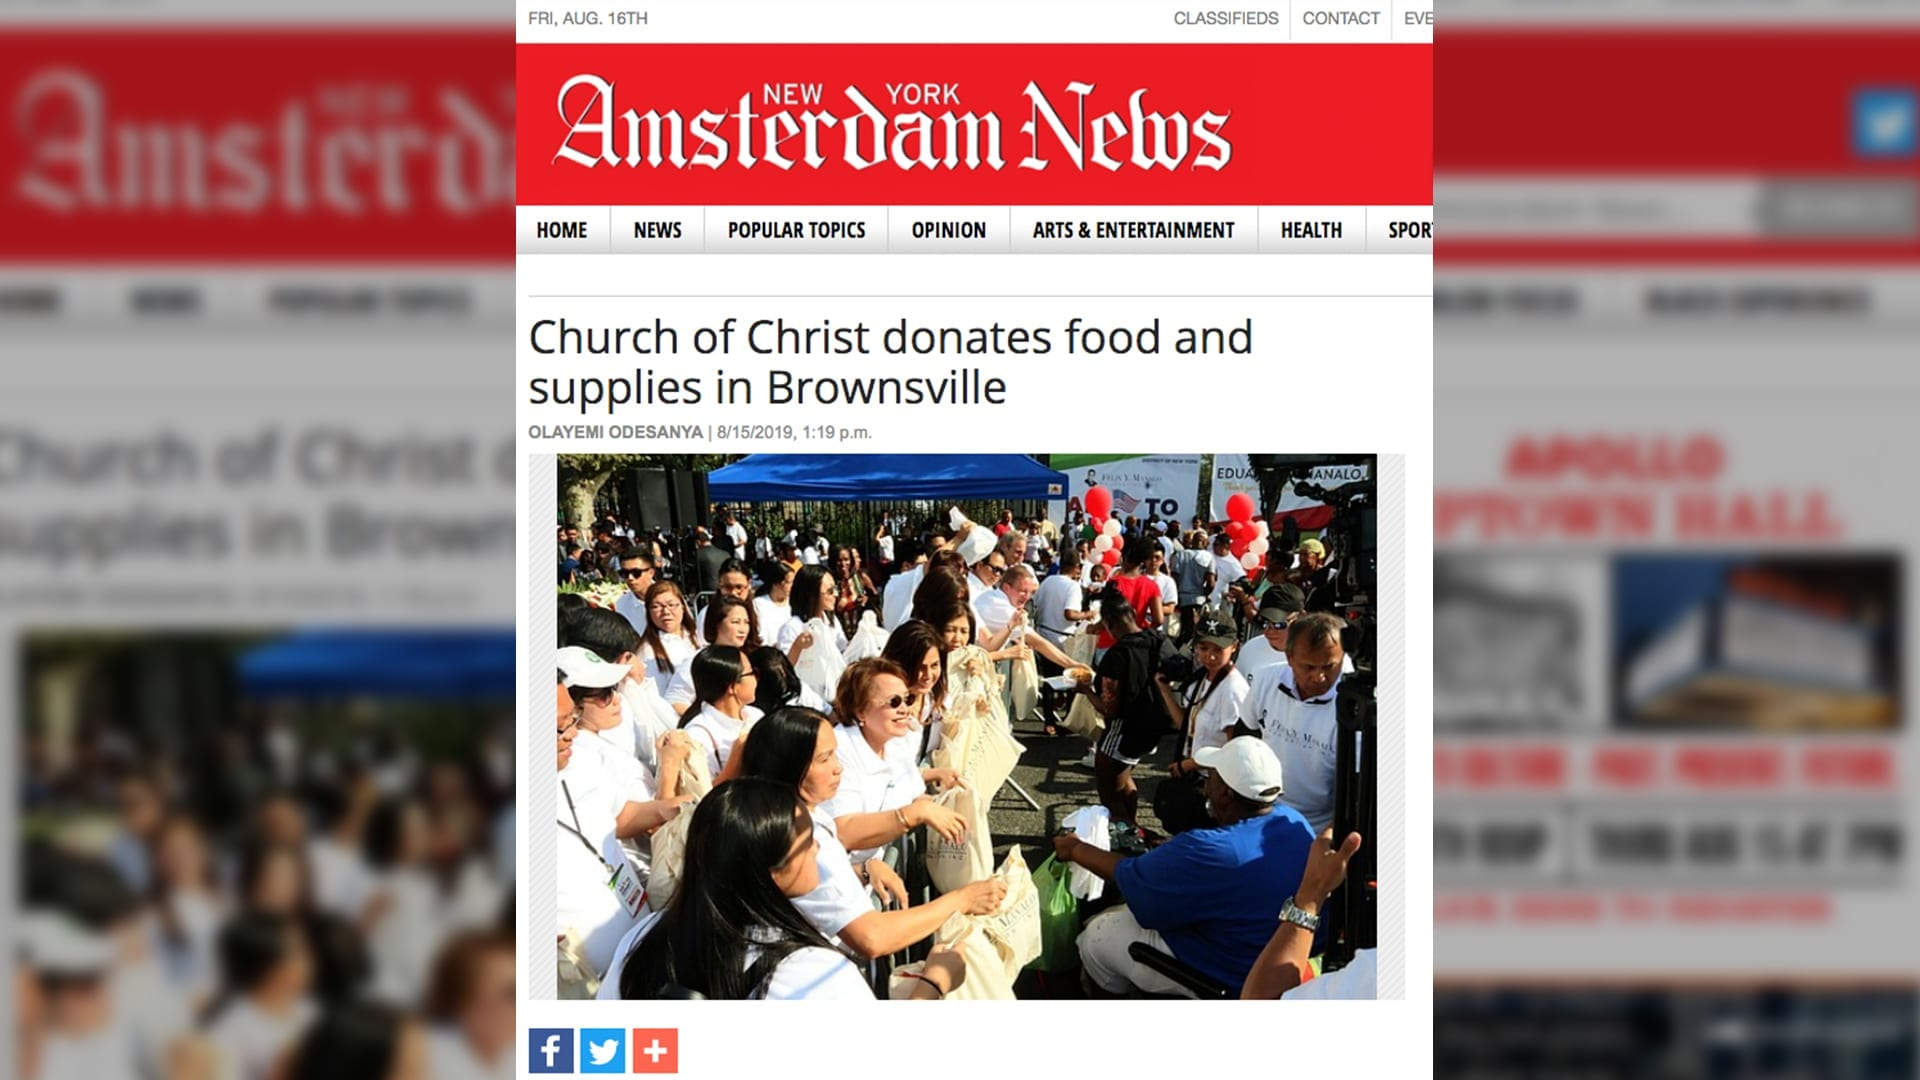 """Amsterdam News cover page with headline """"Church of Christ donates food and supplies in Brownsville"""